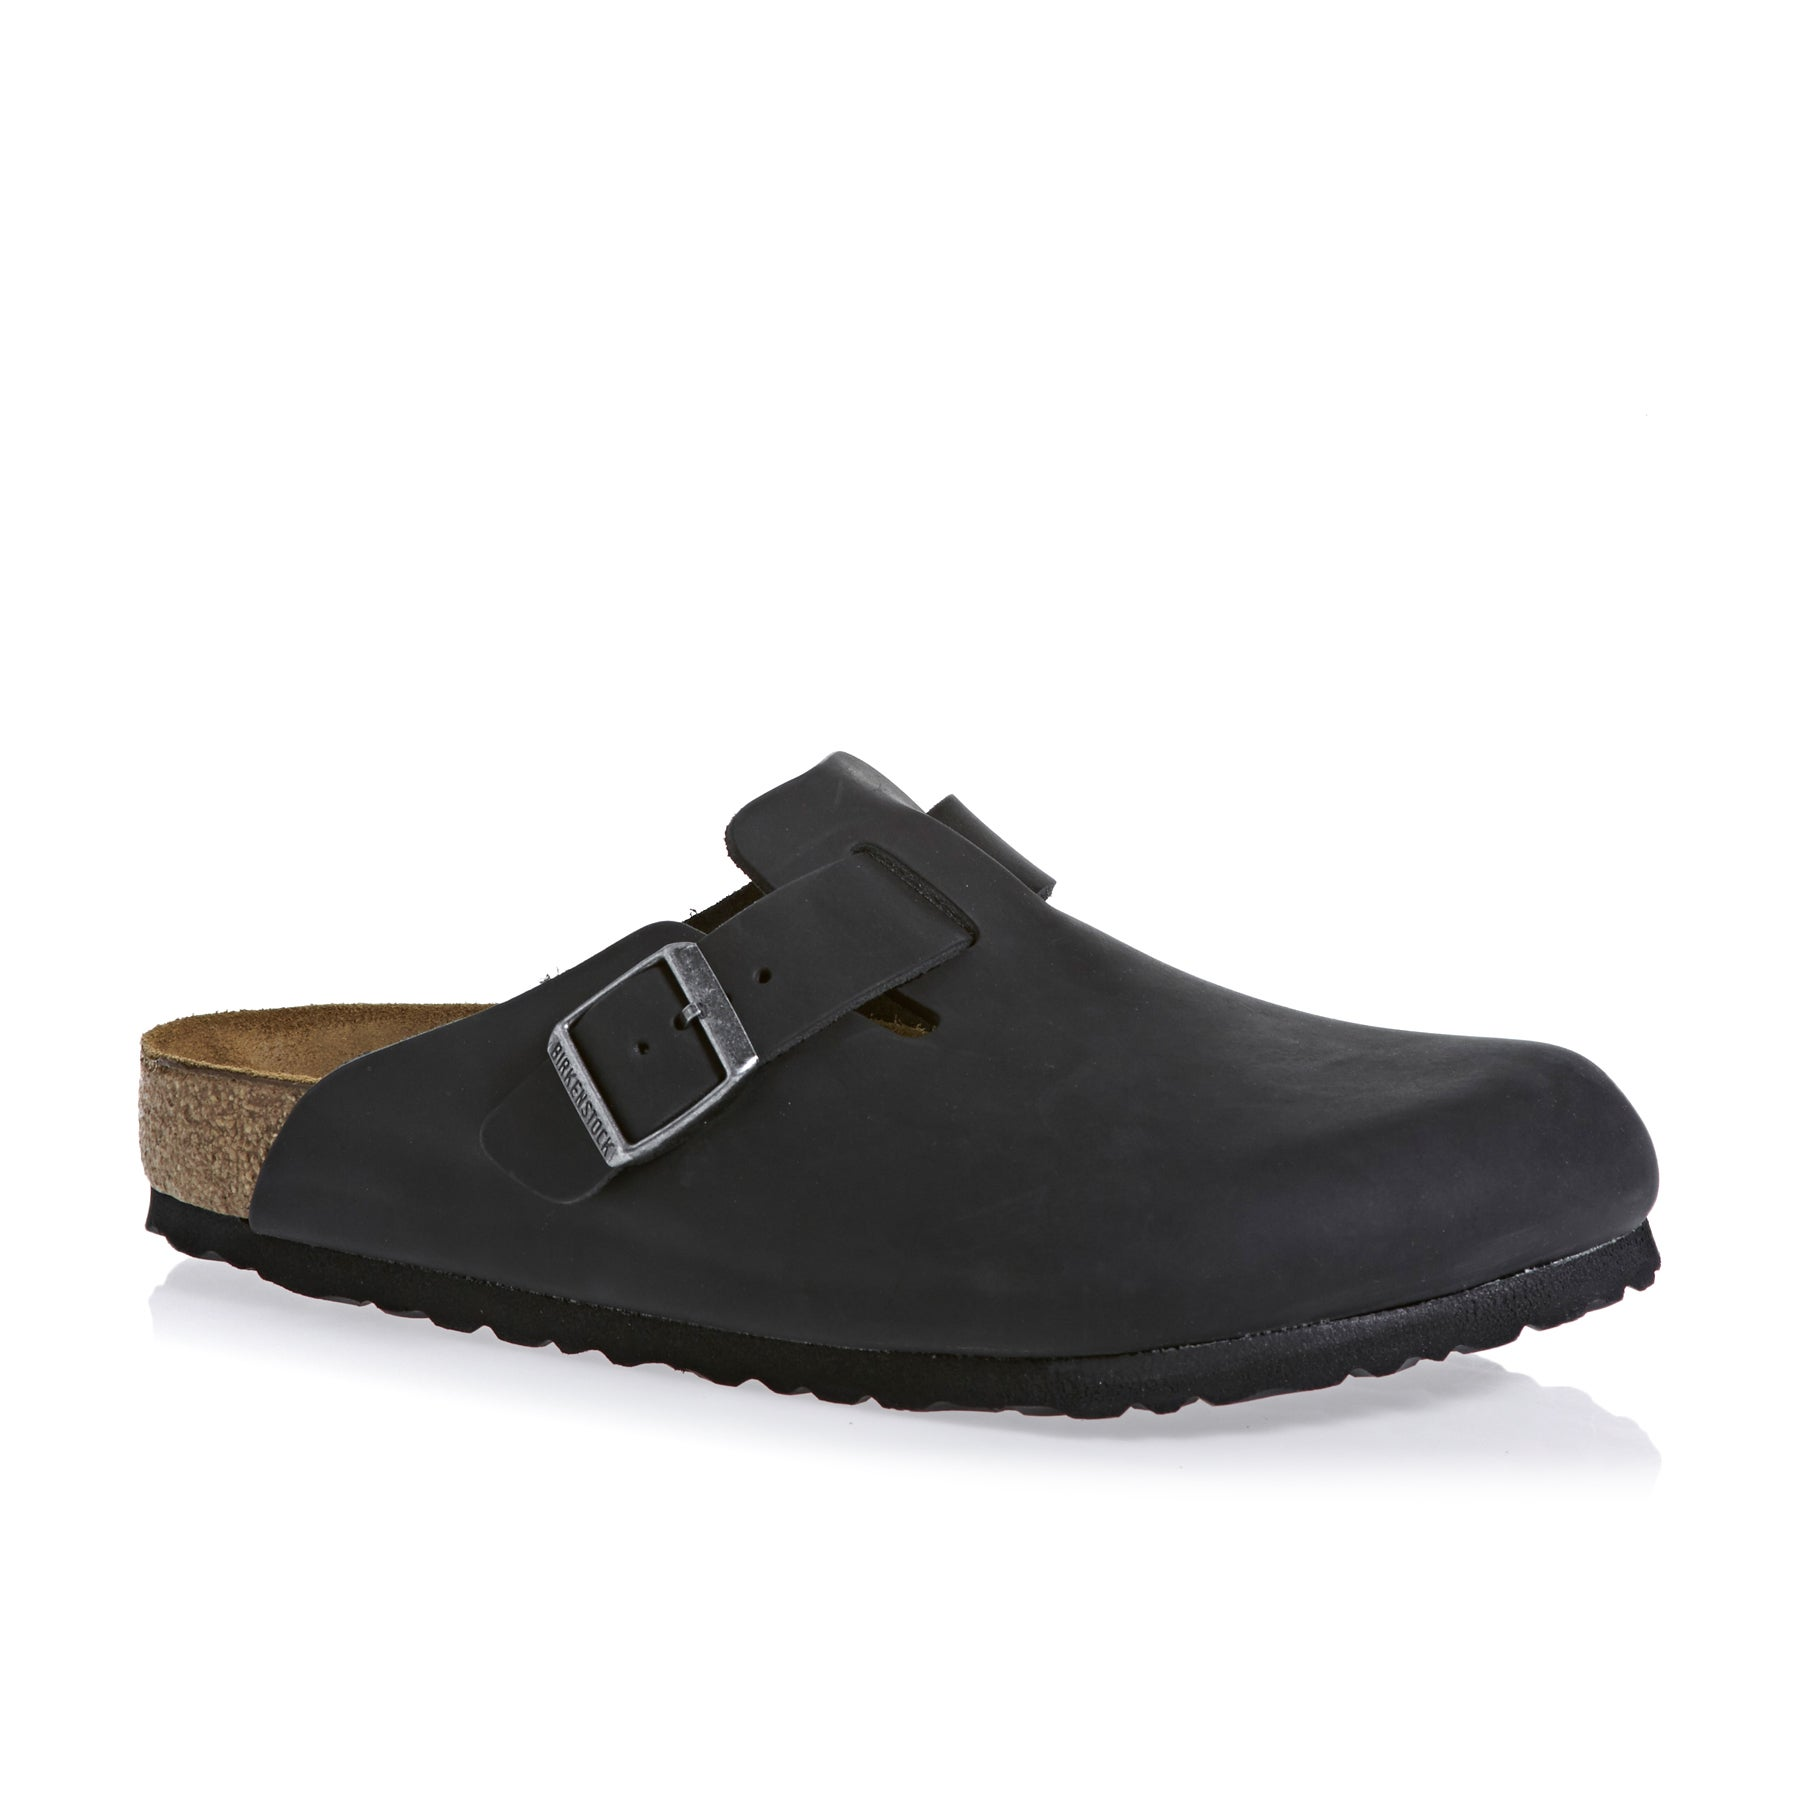 Birkenstock Boston Oiled Leather Slip On Shoes